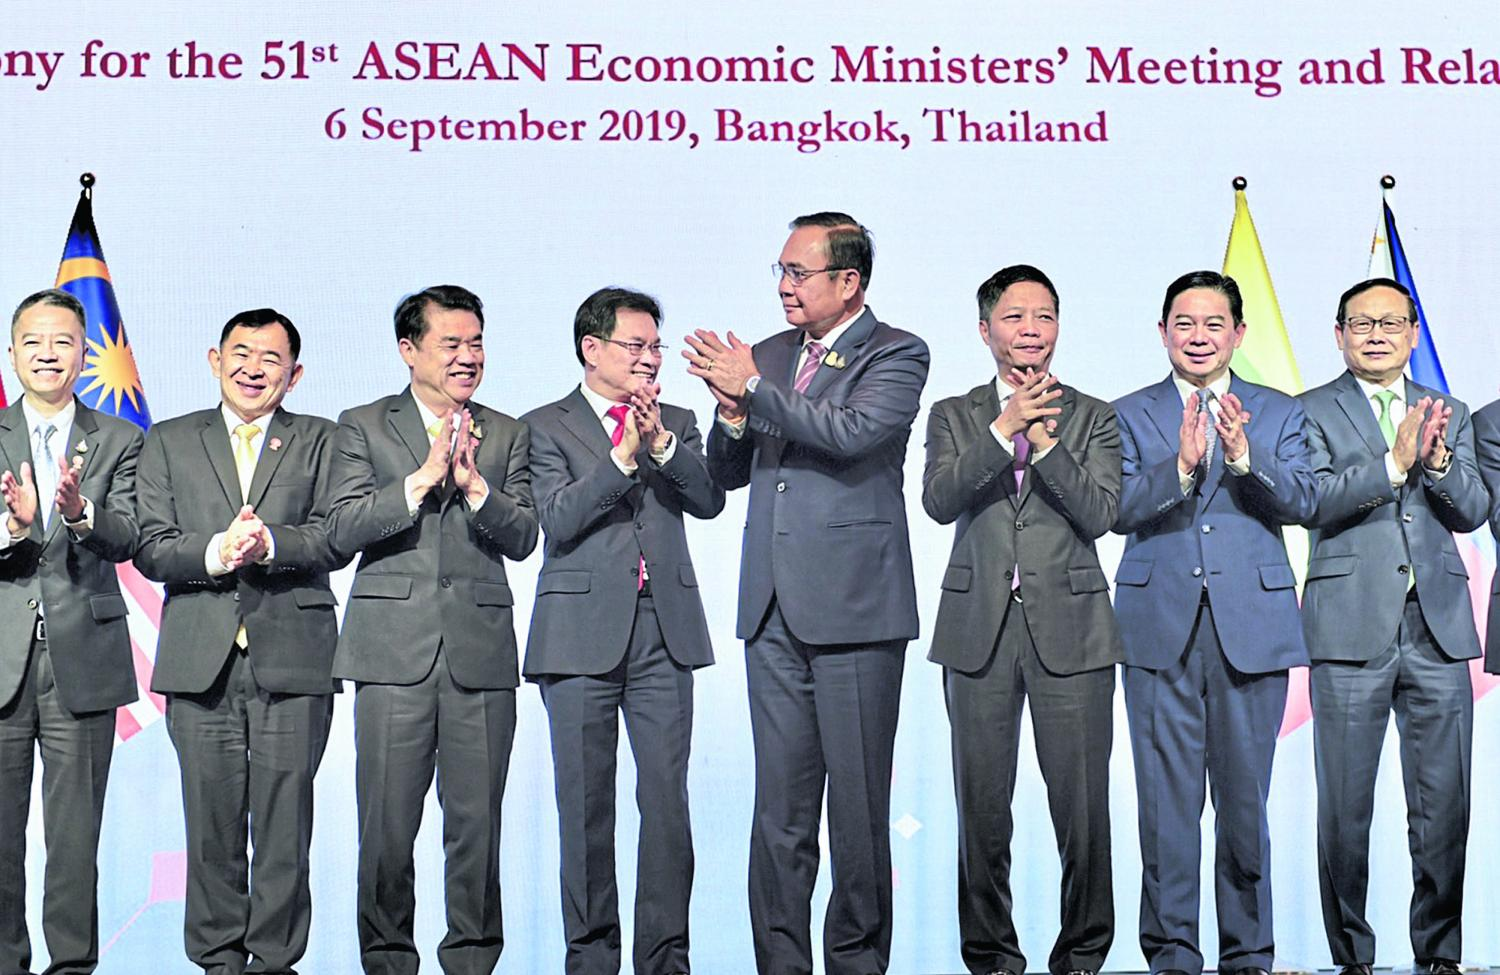 Prime Minister Prayut Chan-o-cha leads Asean economic ministers in a round of applause to mark the opening of the 51st Asean Economic Ministers' Meeting and related meetings in Bangkok on Friday.(Government House photo)